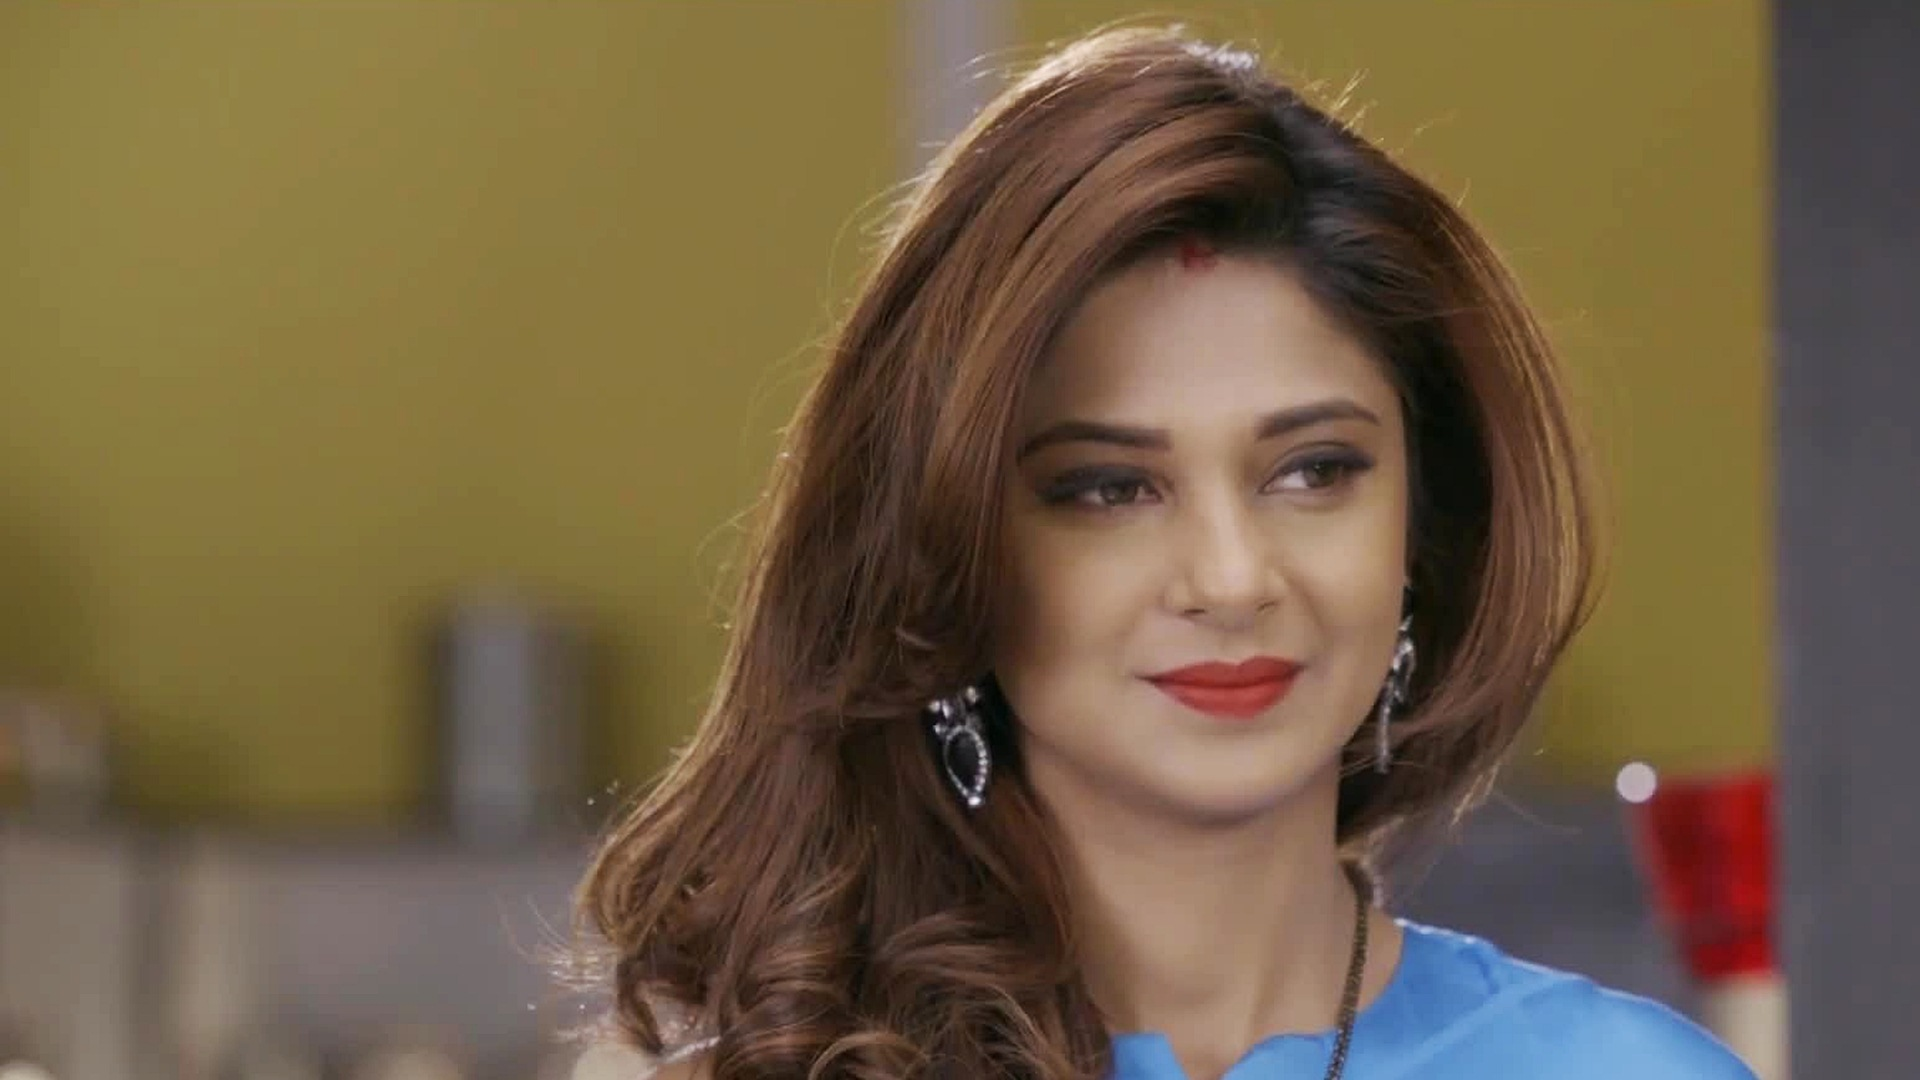 lovely jennifer winget homely look deskop mobile background free wallpaper hd